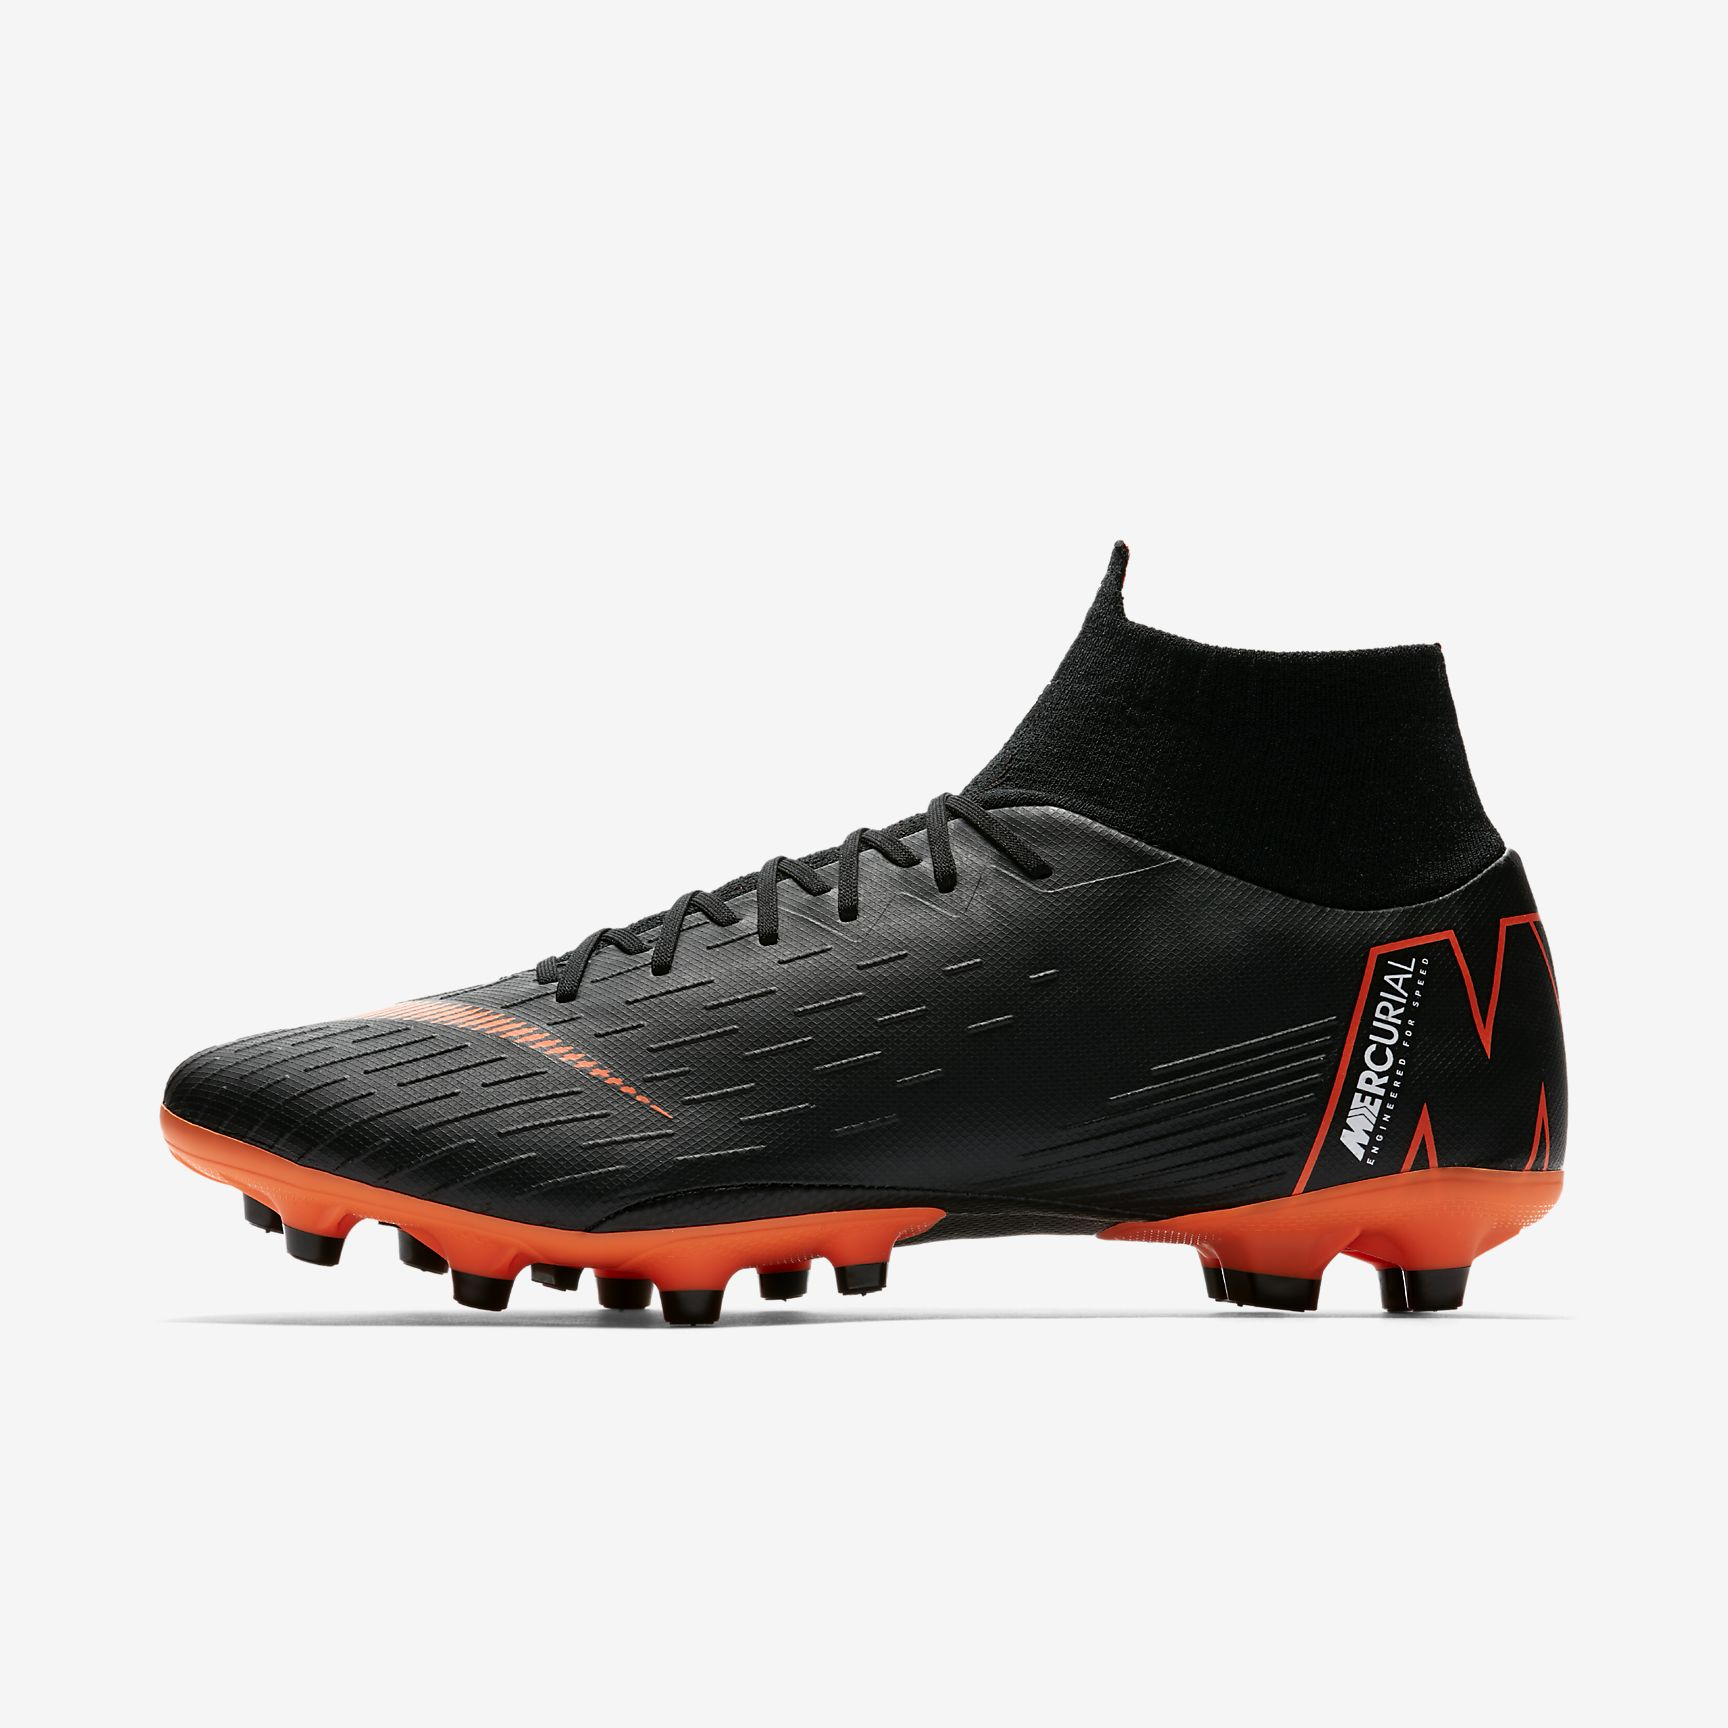 chaussures-football-Nike-Mercurial-Superfly-VI-Pro-img1